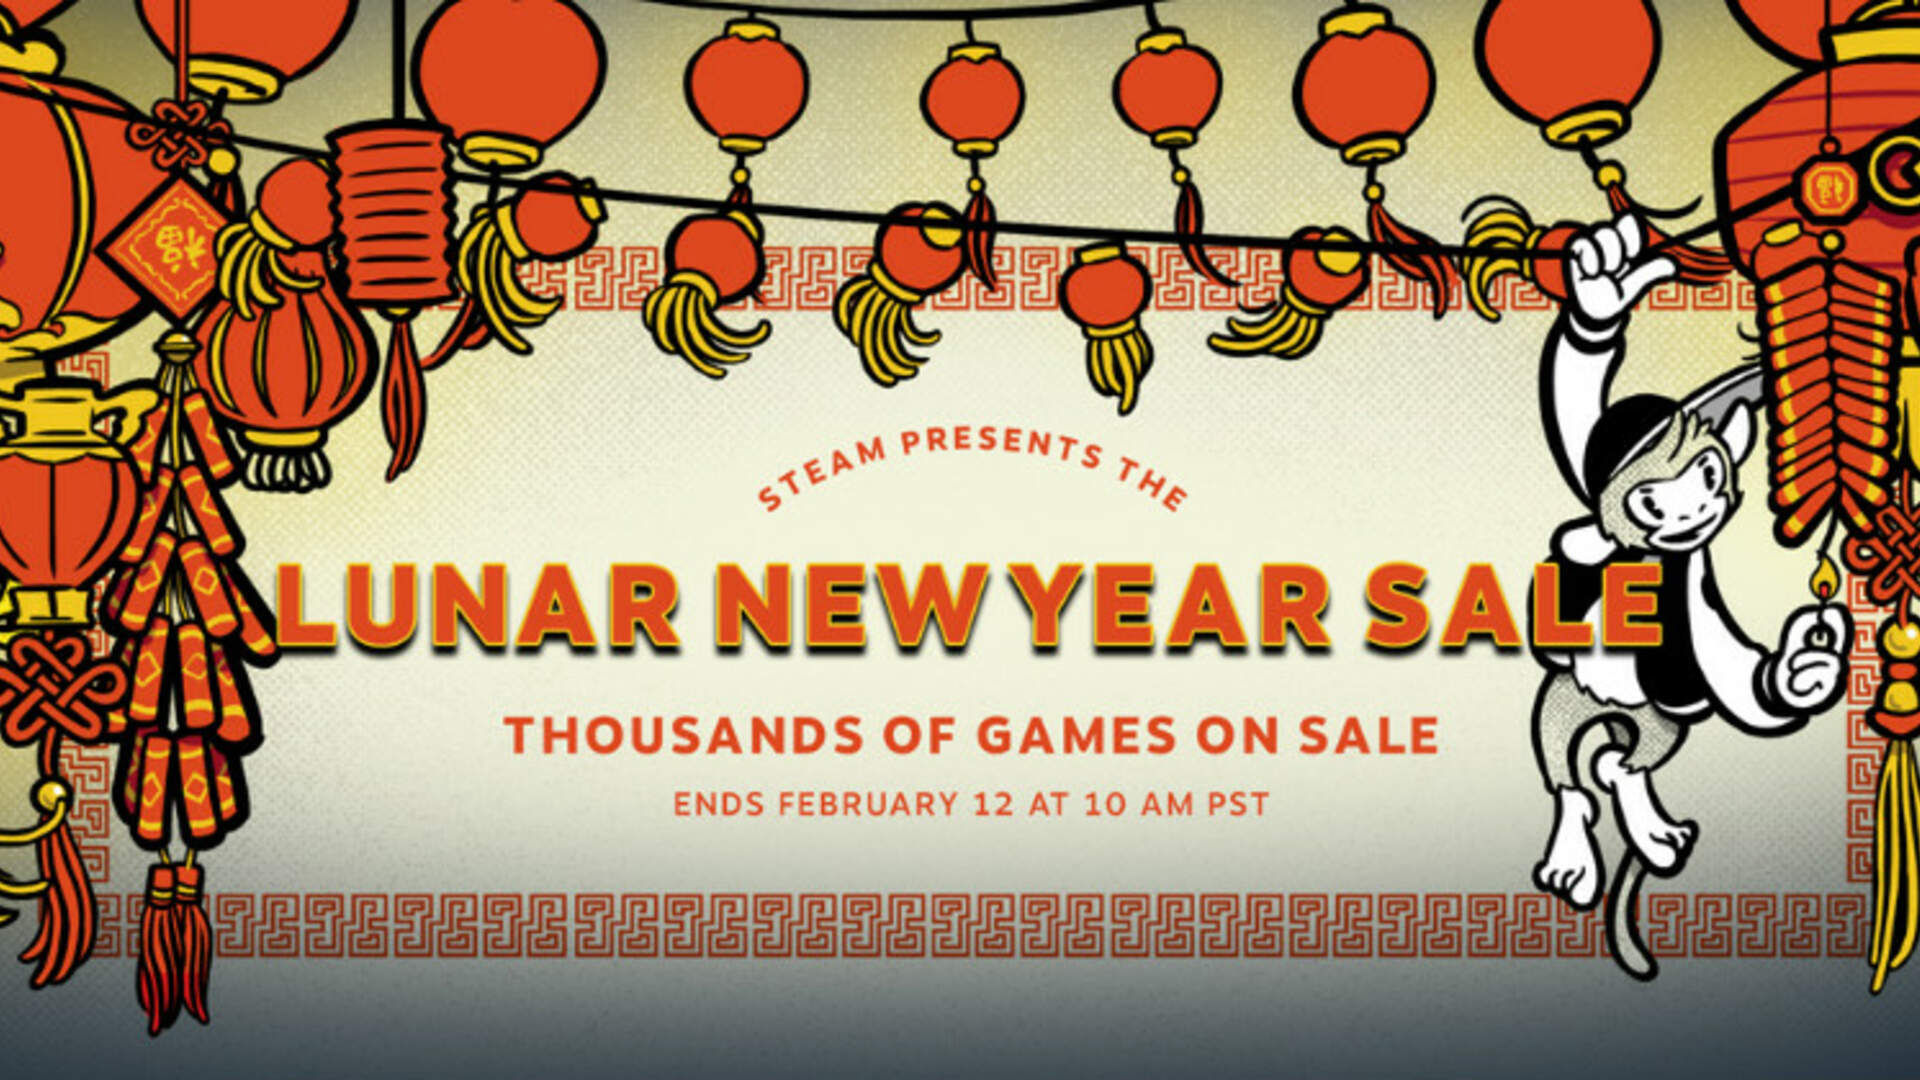 What Should You Buy in the Steam Lunar New Year Sale?